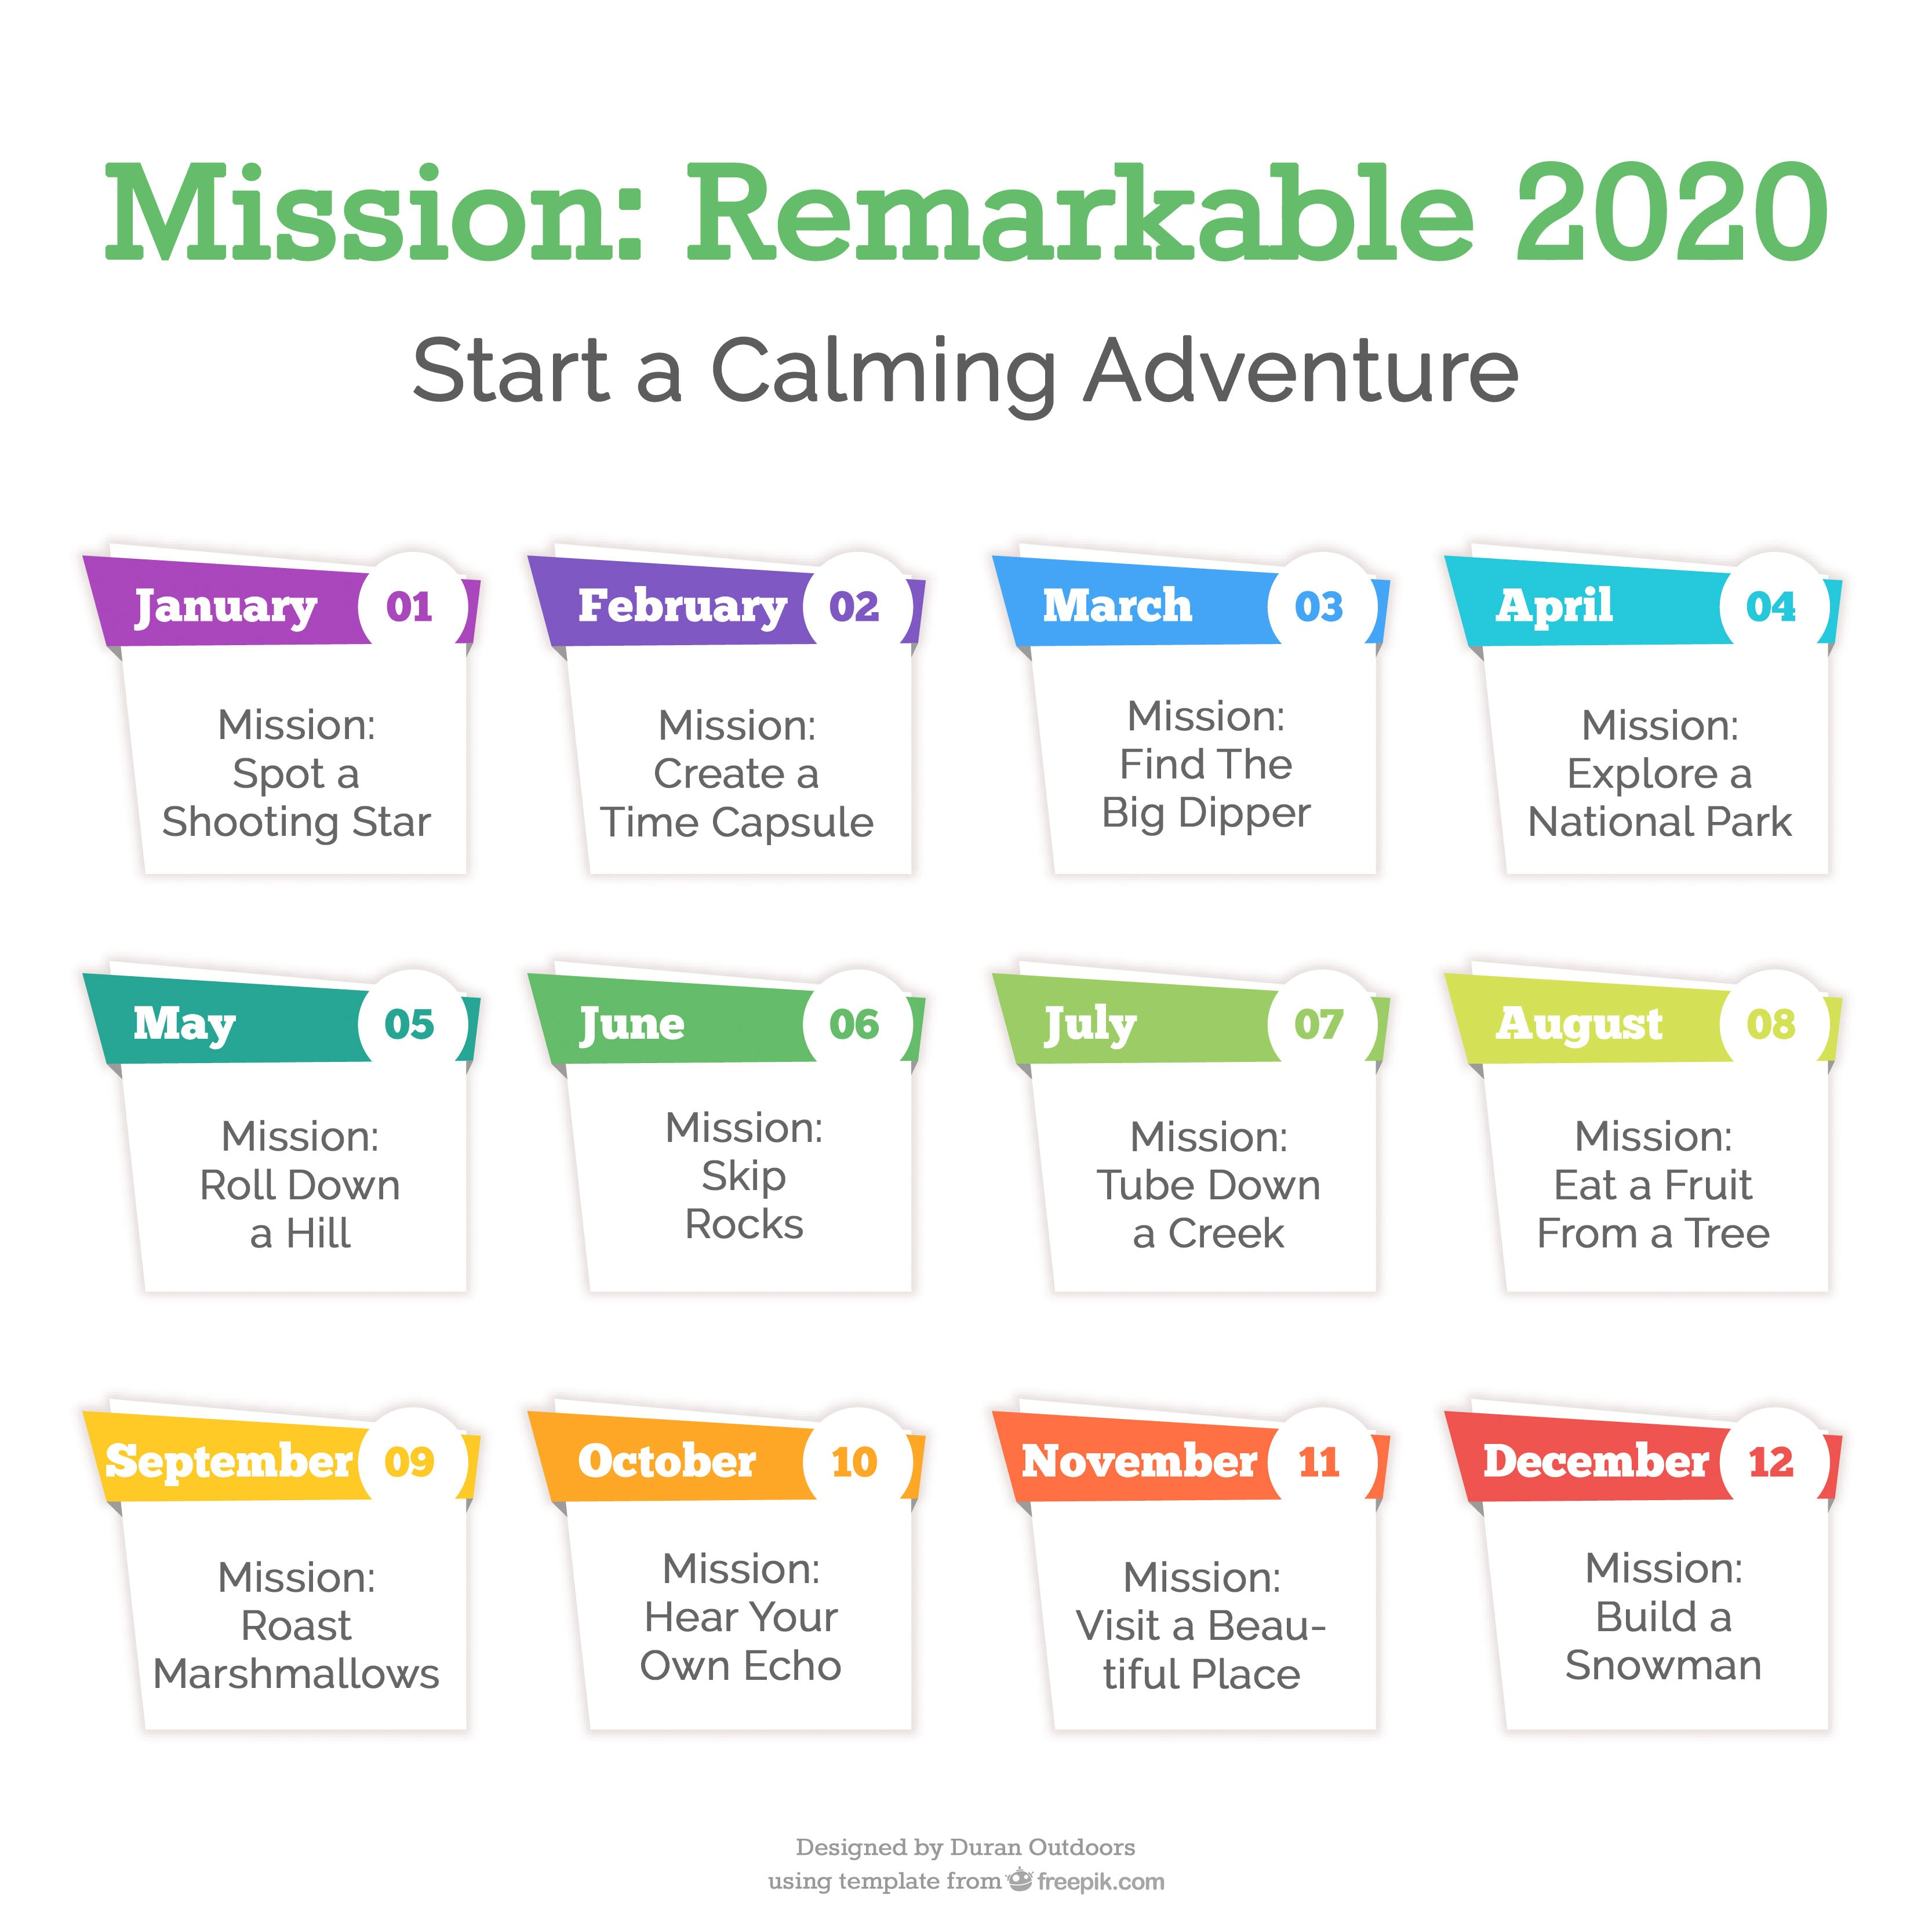 Mission: Remarkable 2020